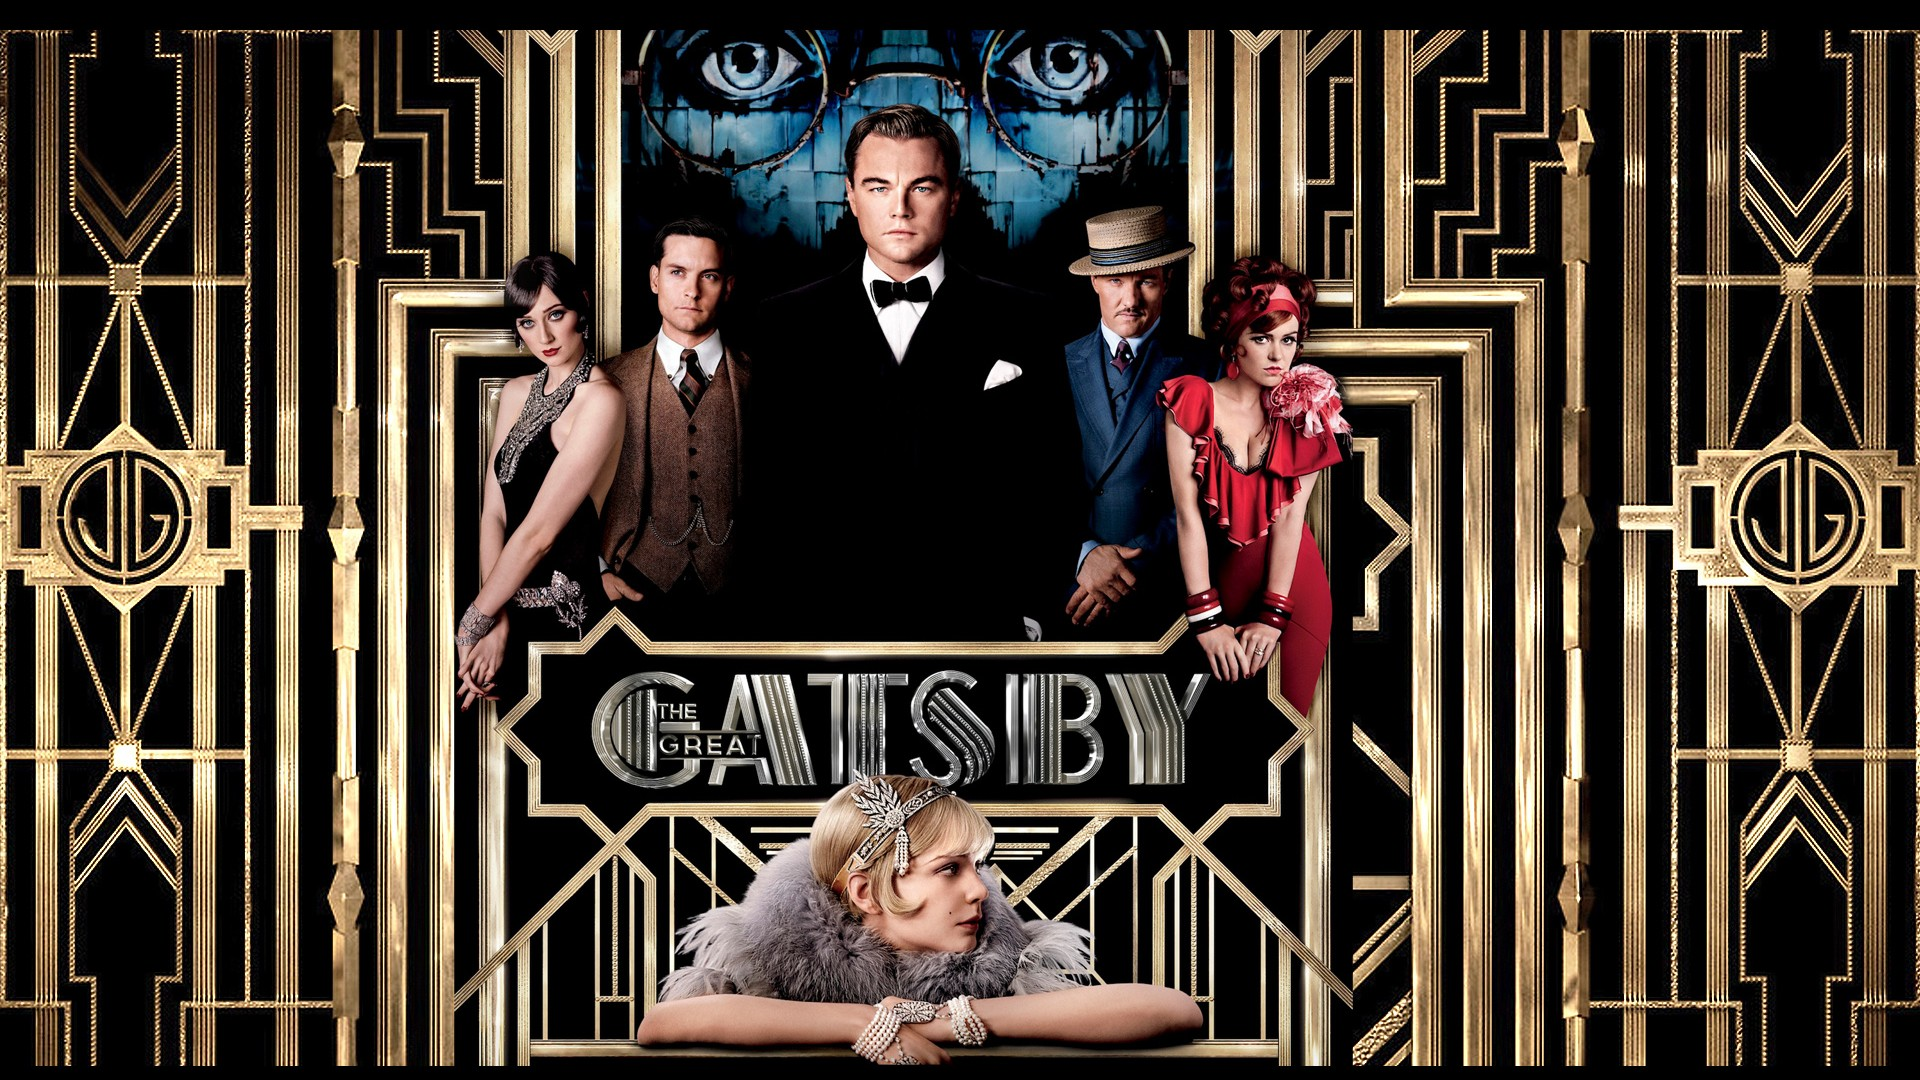 the great gatsby conversation Ries, possessions and canada for the great gatsby are controlled  levy's  combination of narration, dialogue and action delivers most of what is best in.